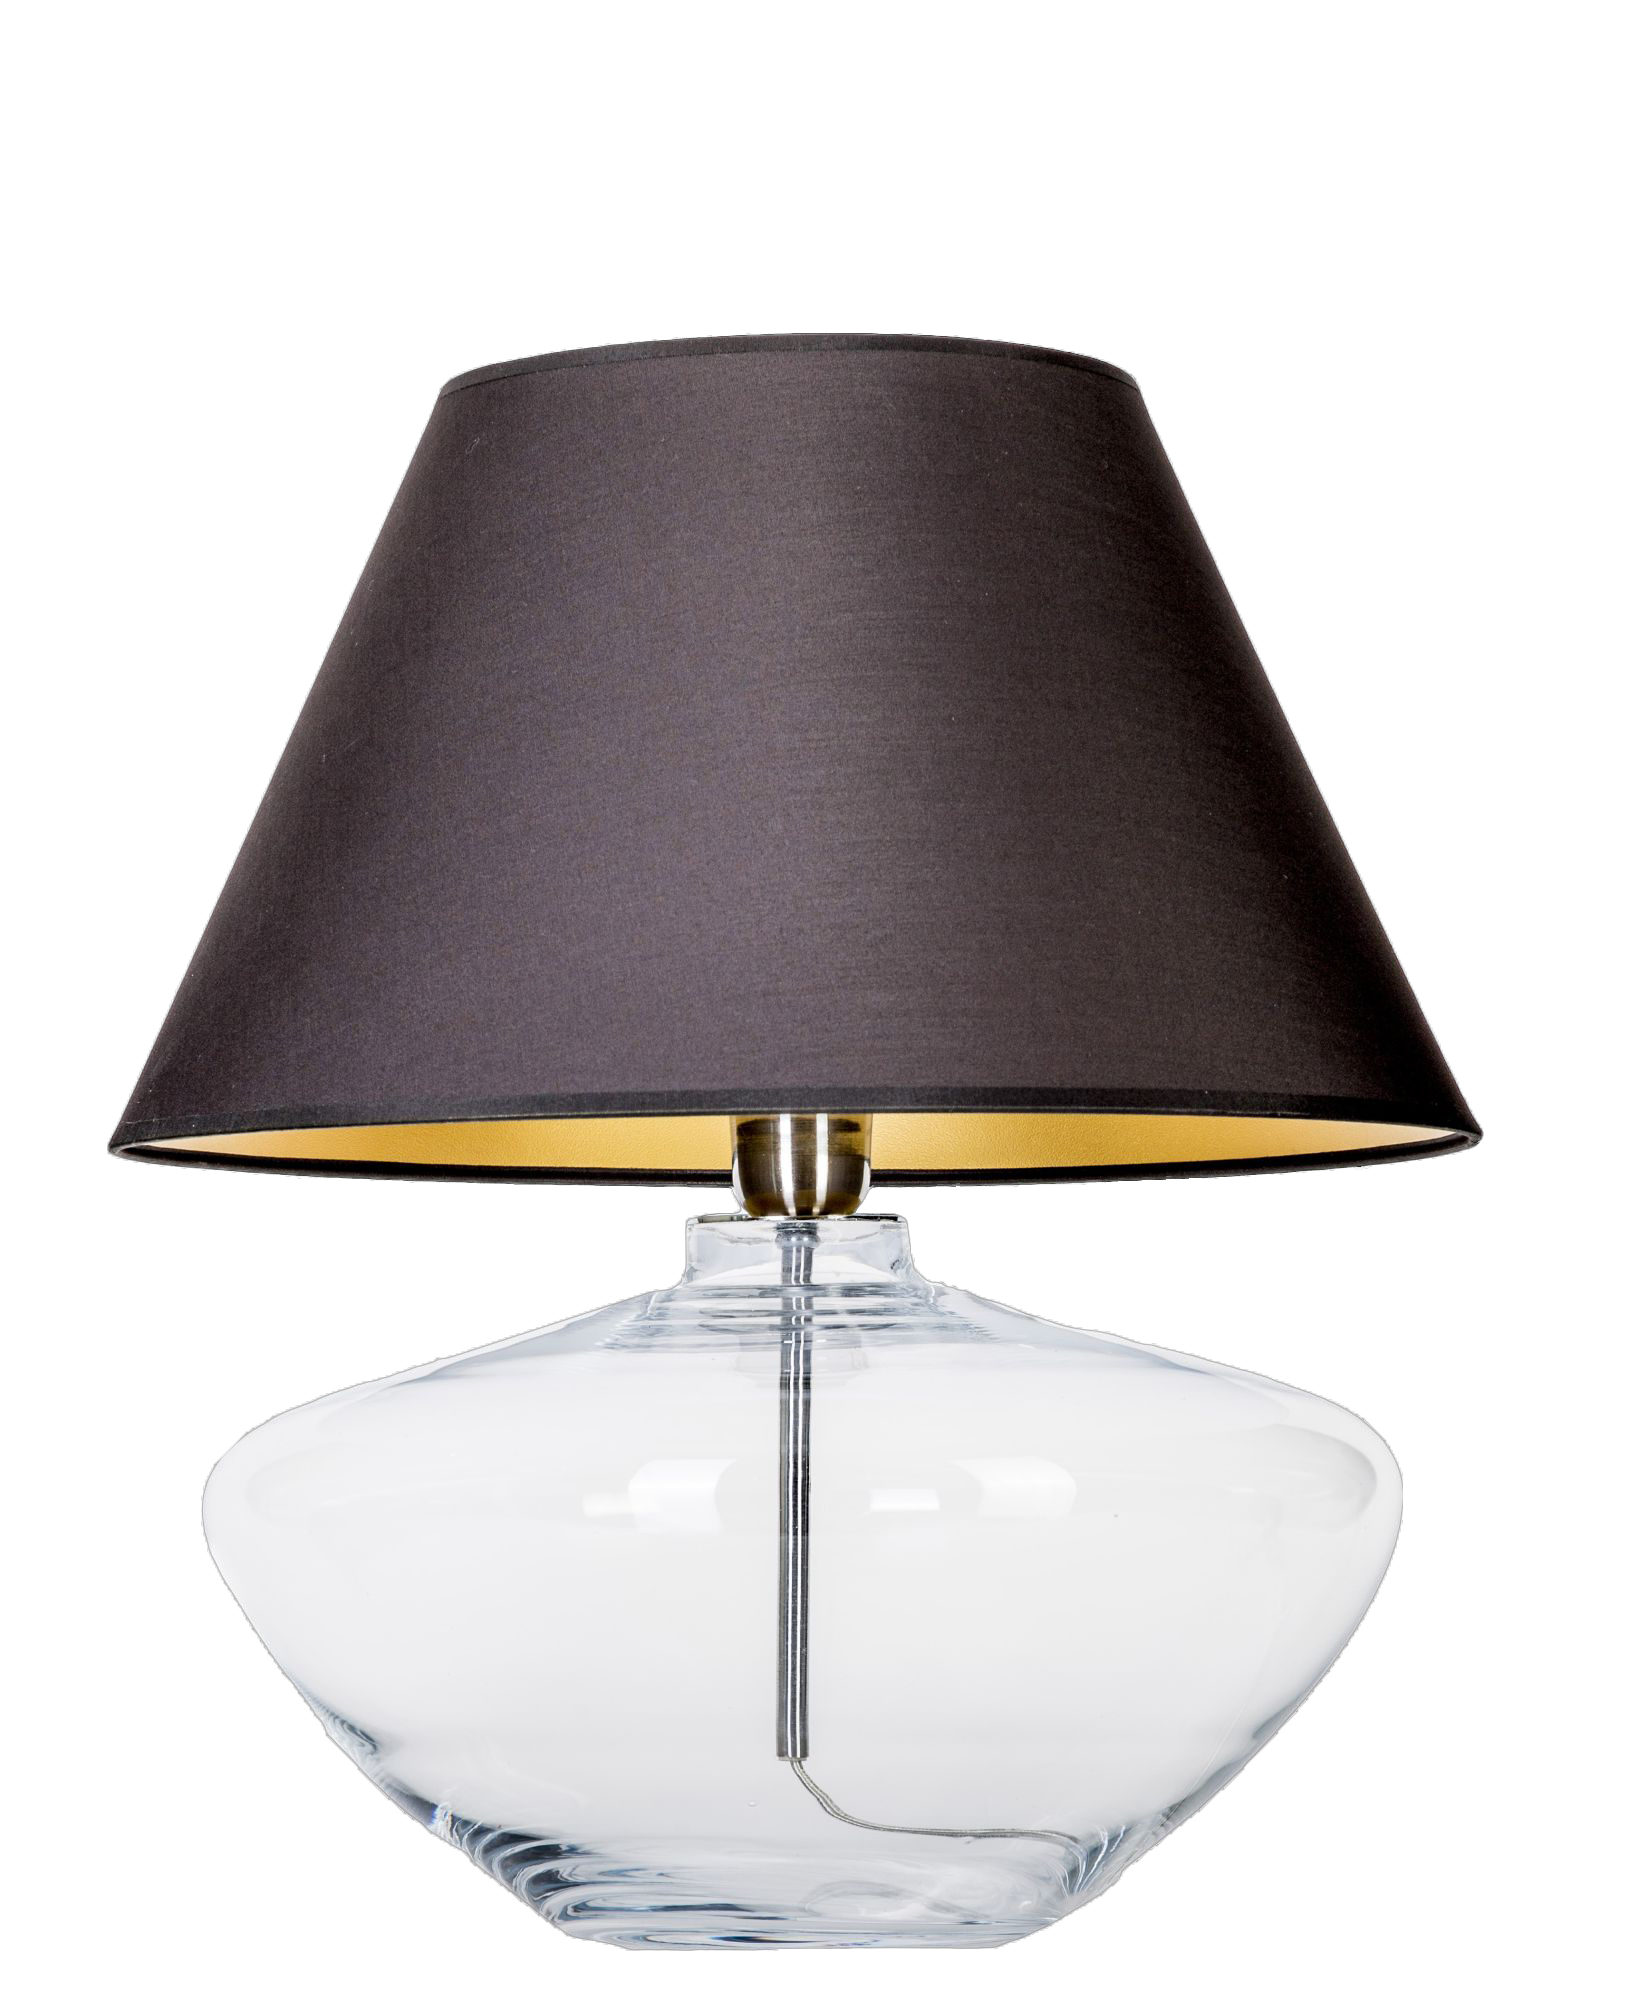 4 Concepts Madrid Clear Glass Table Lamp Black Gold